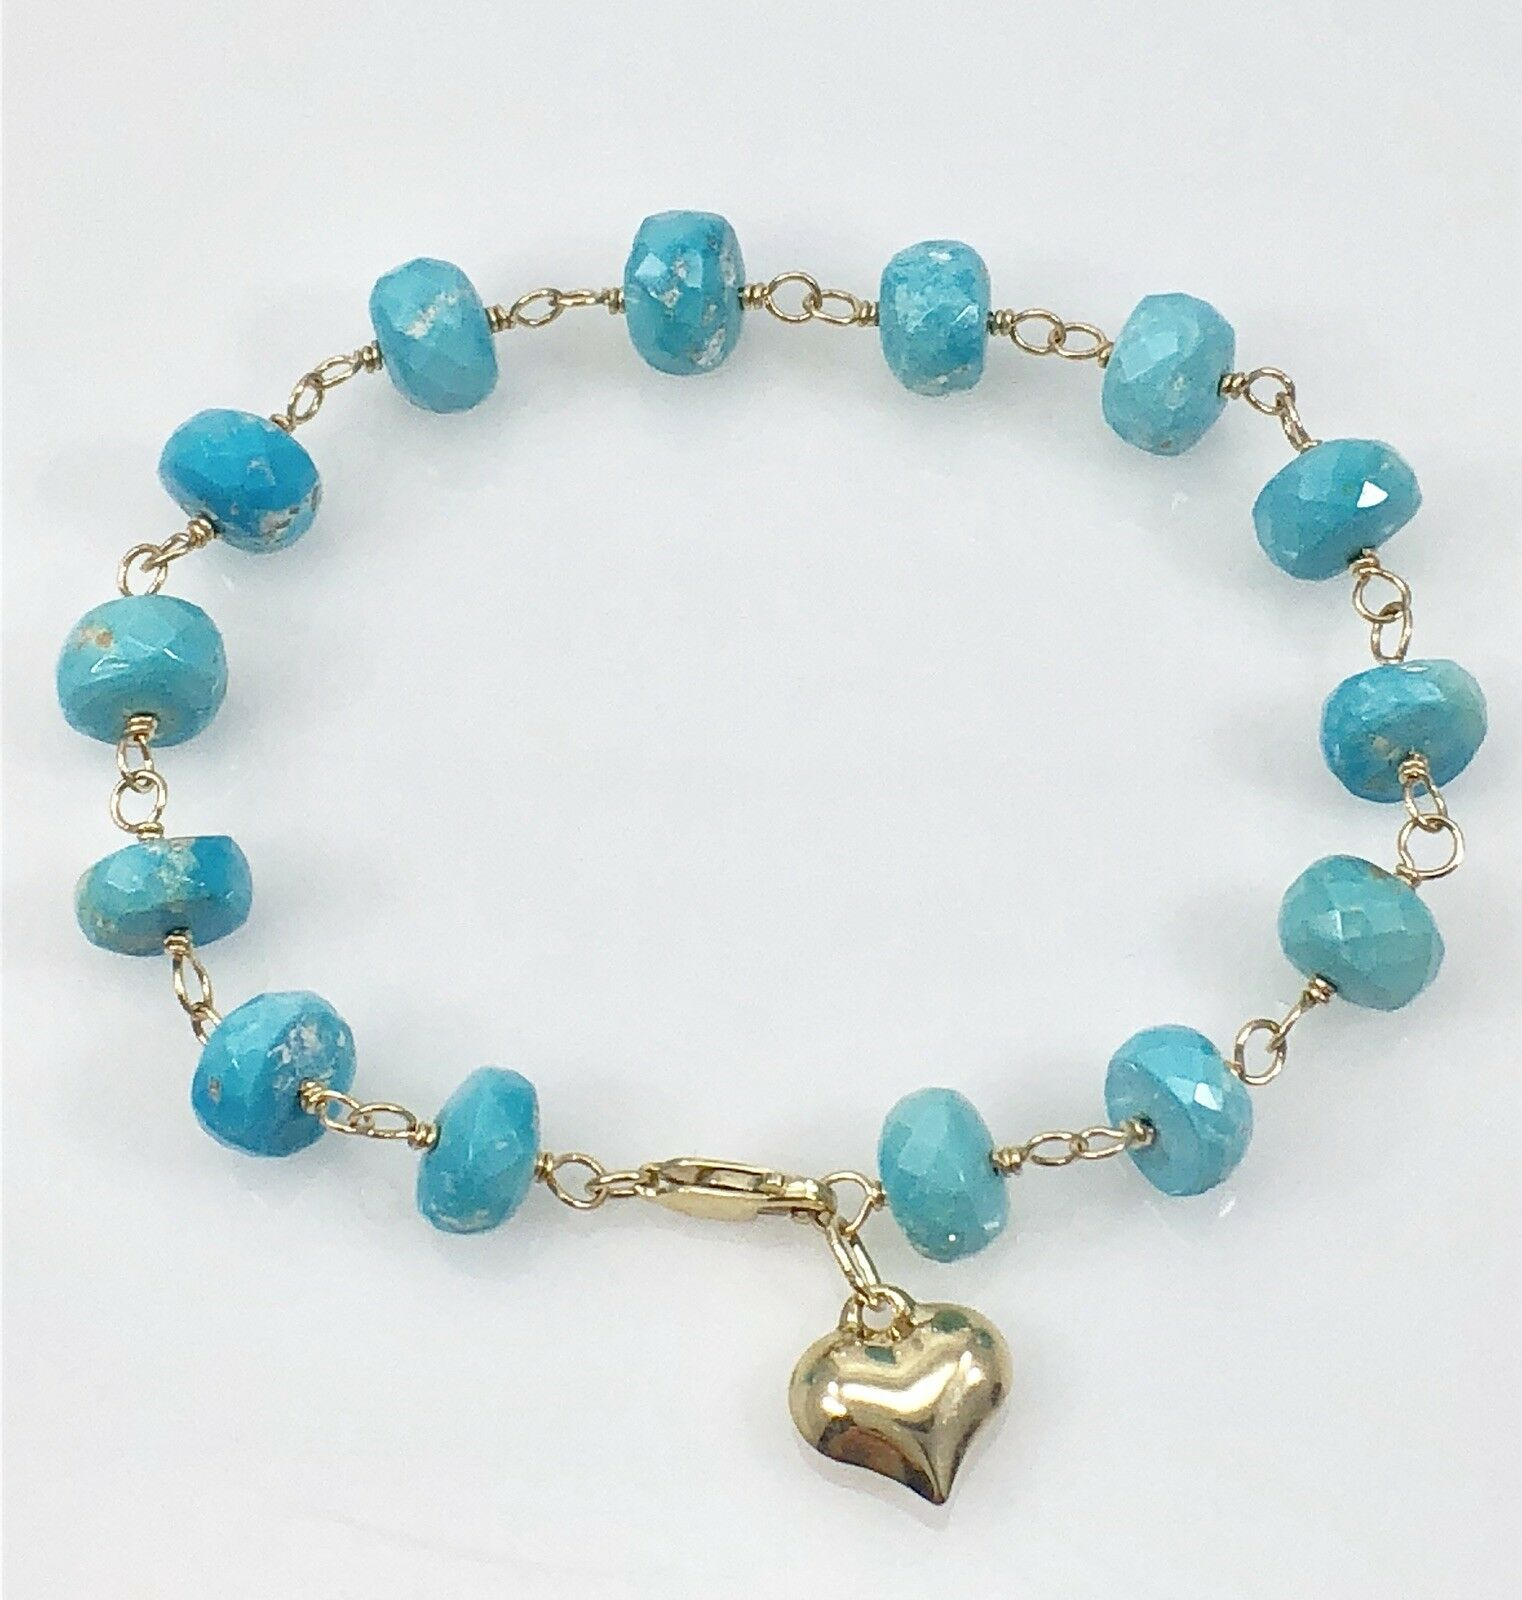 Sleeping Beauty Turquoise & Solid 14kt Yellow gold Bracelet, 7 , New